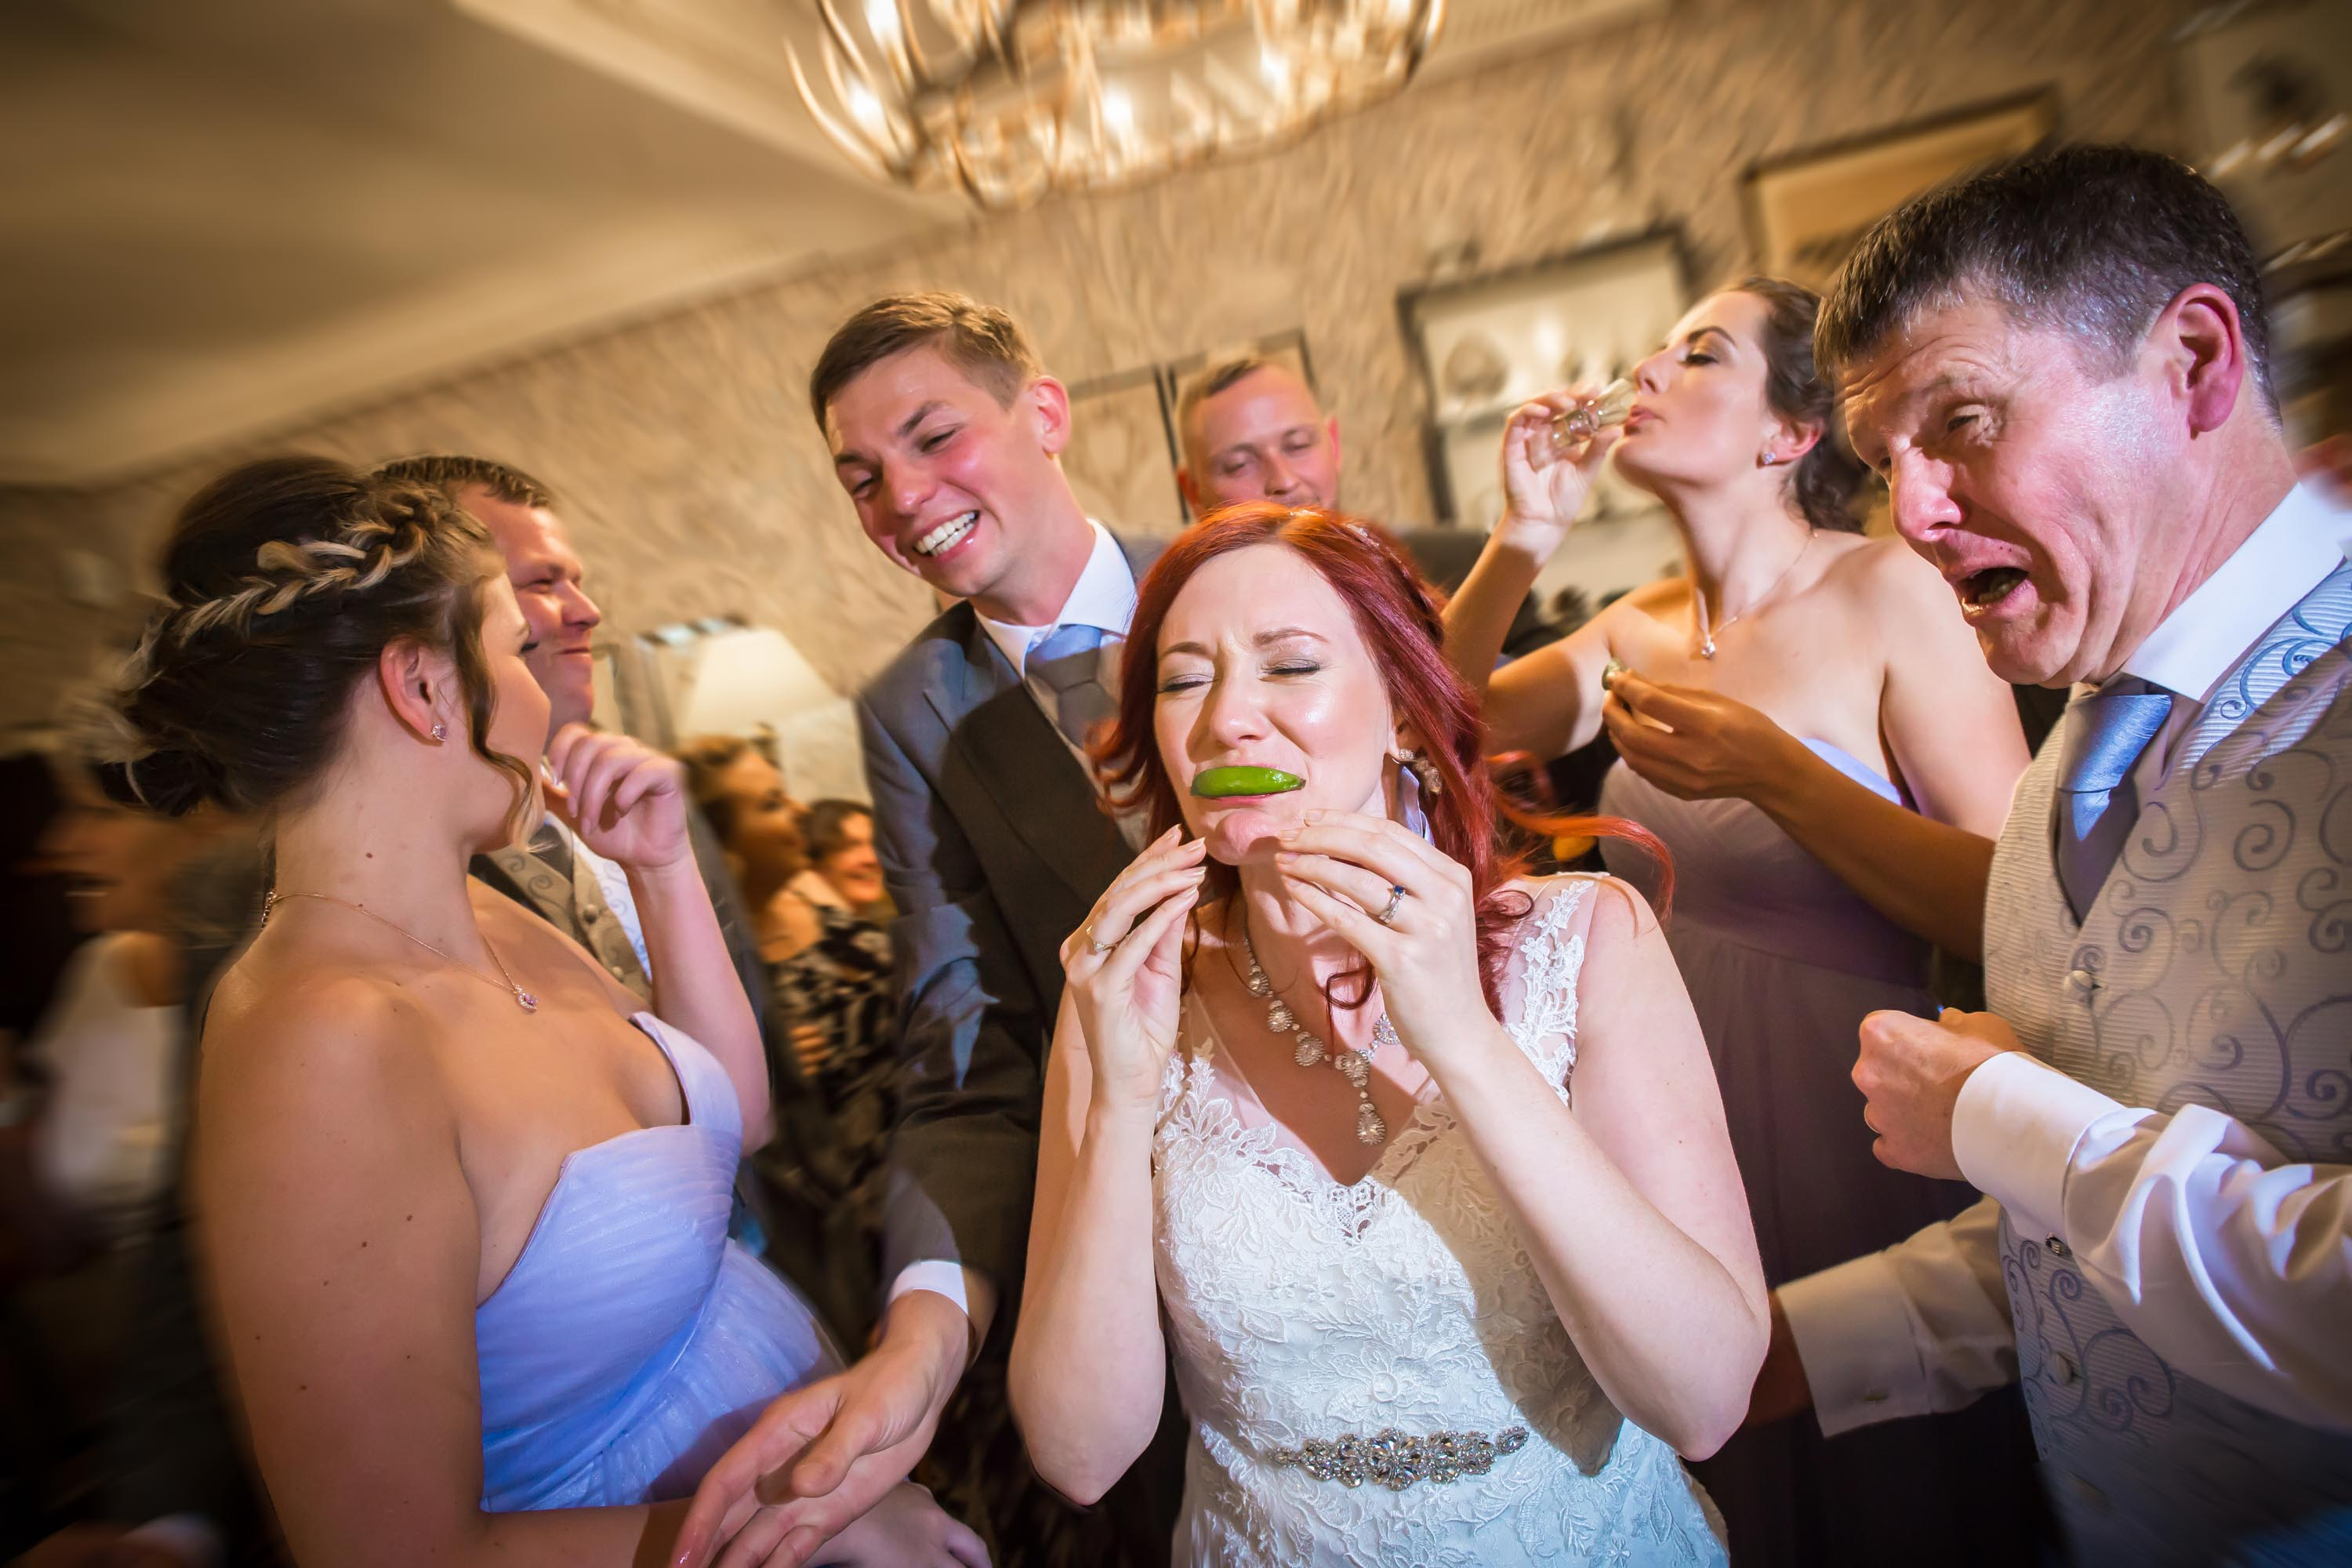 bride and groom do slammers at the bar with wedding guests